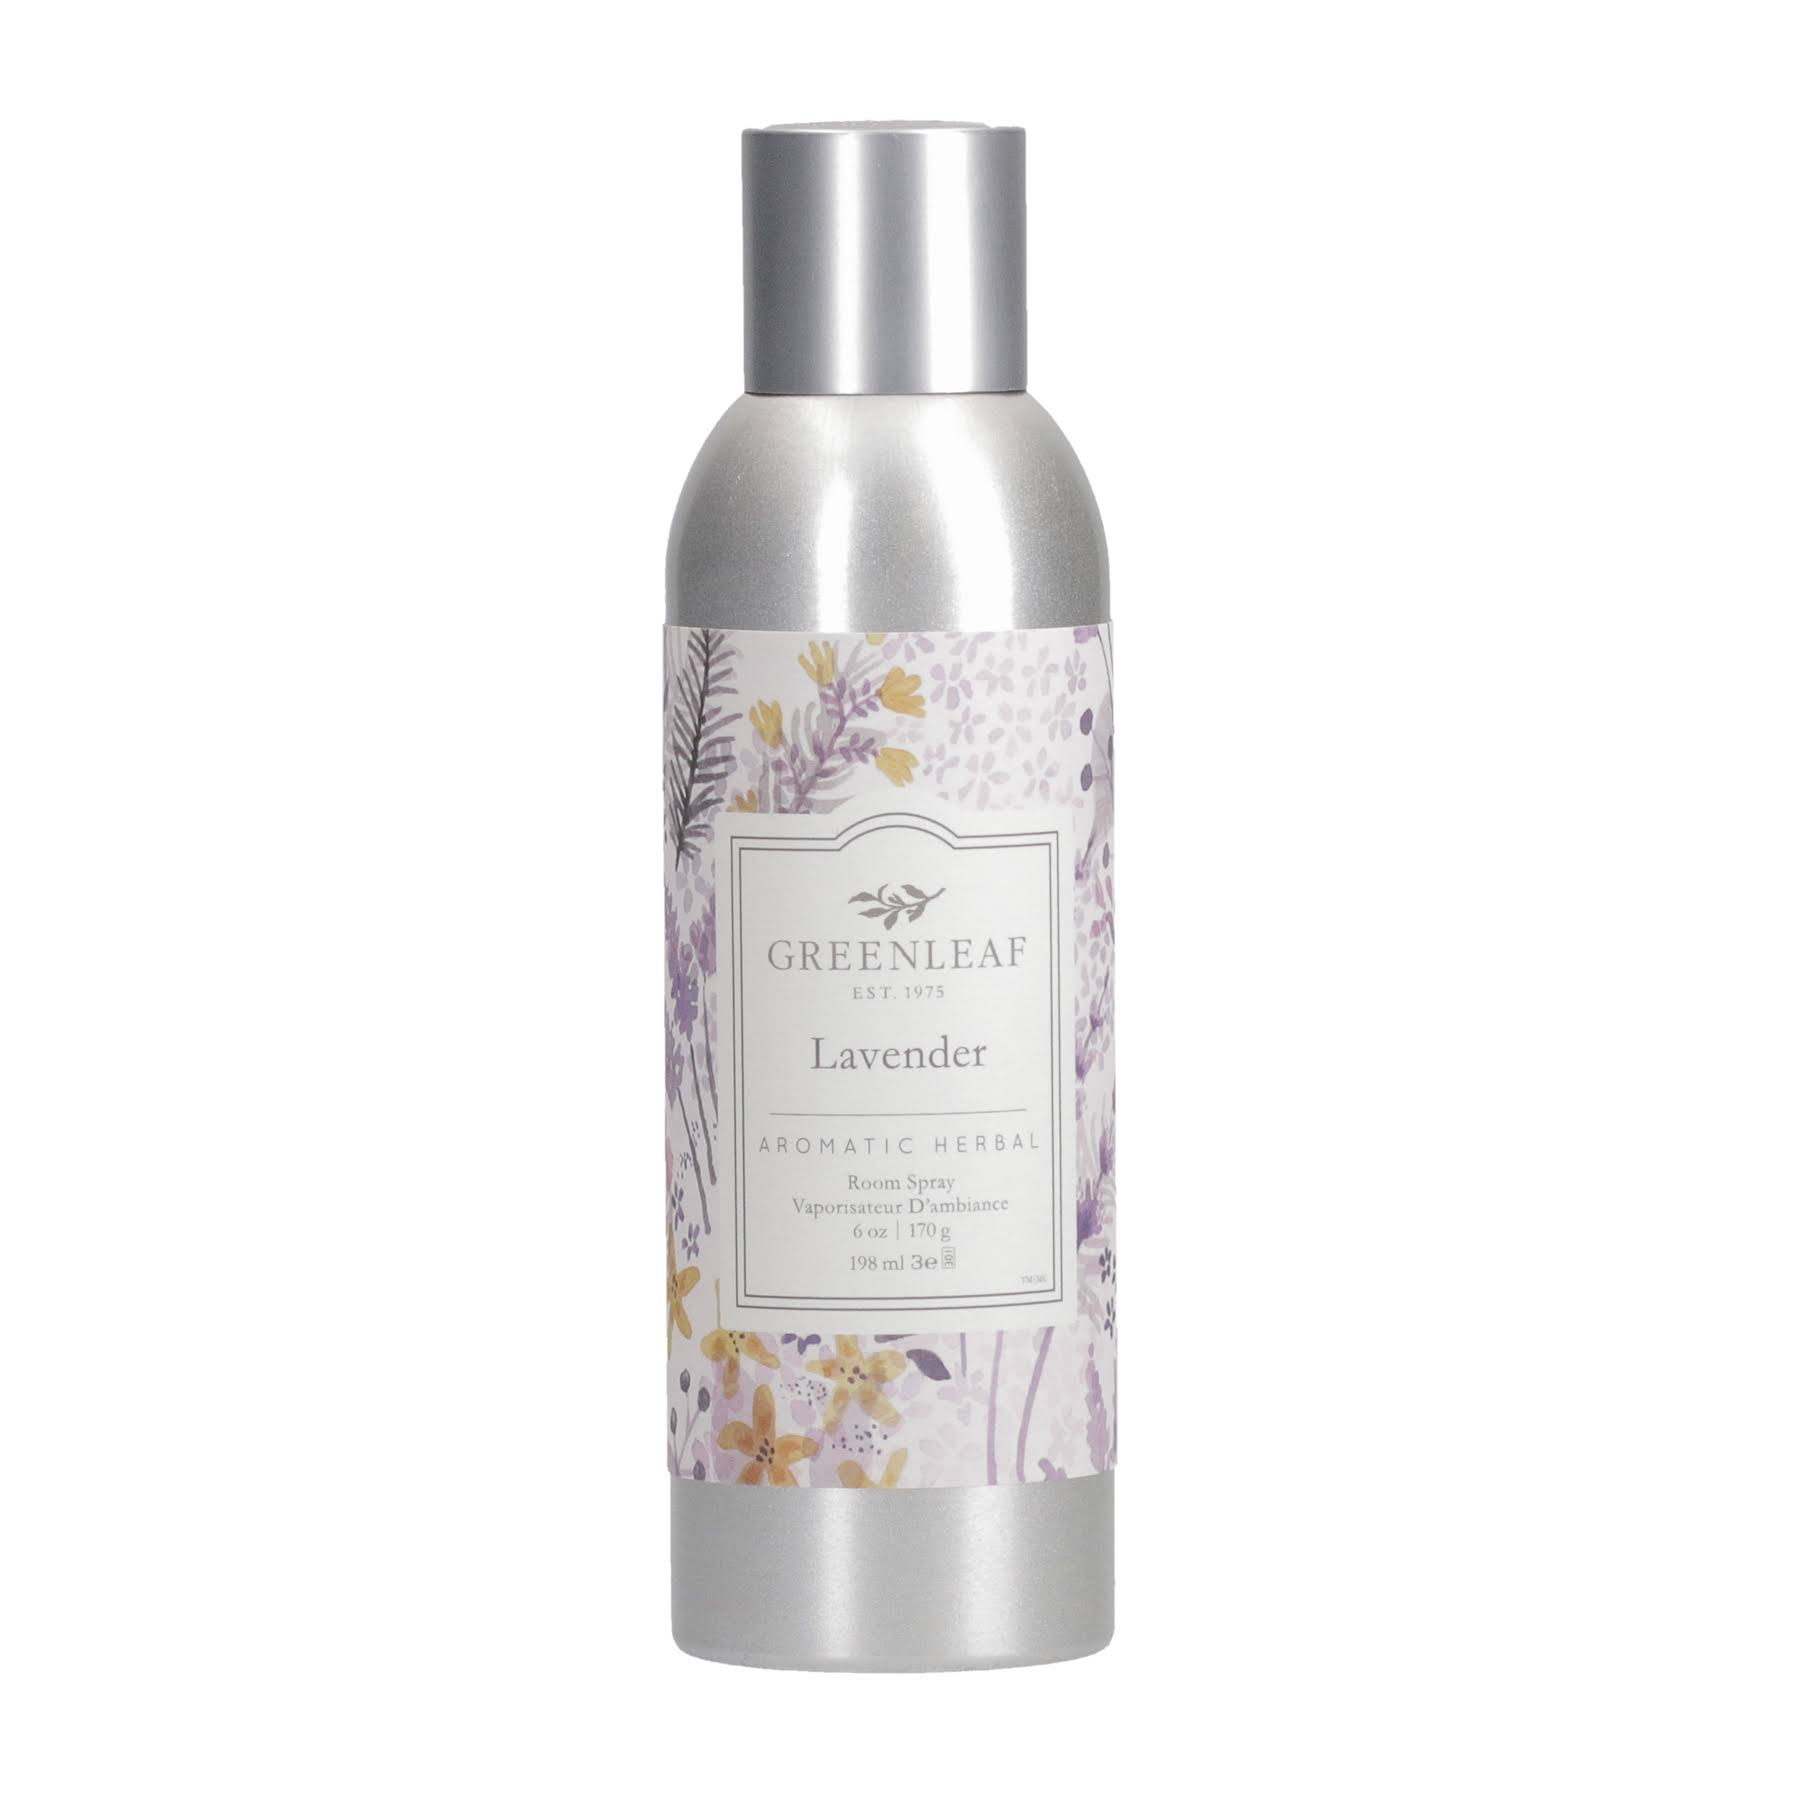 Greenleaf Air Freshener Room Spray - Lavender - Made in The USA